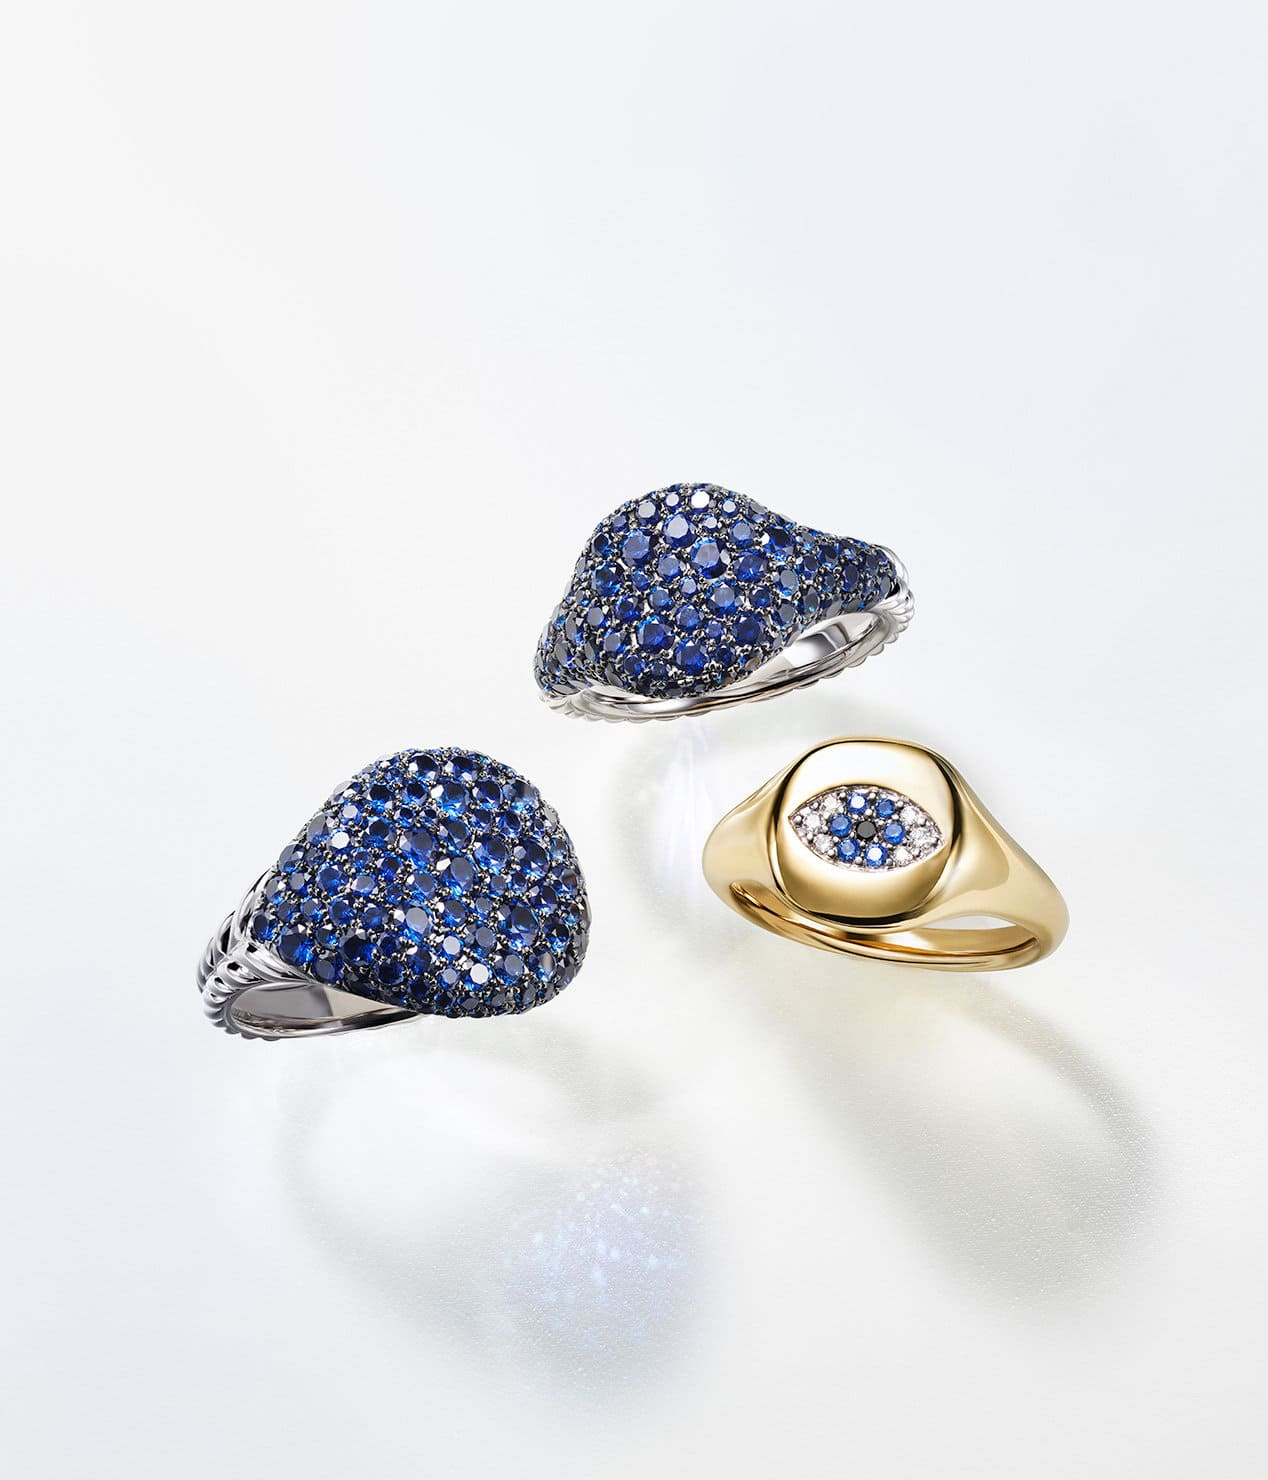 A color photograph shows three David Yurman pinky rings placed atop a white background with soft shadows. Two rings are crafted from 18K white gold with pavé blue sapphires. The final ring is crafted from 18K yellow gold with pavé diamonds and blue sapphires set to look like an evil eye.